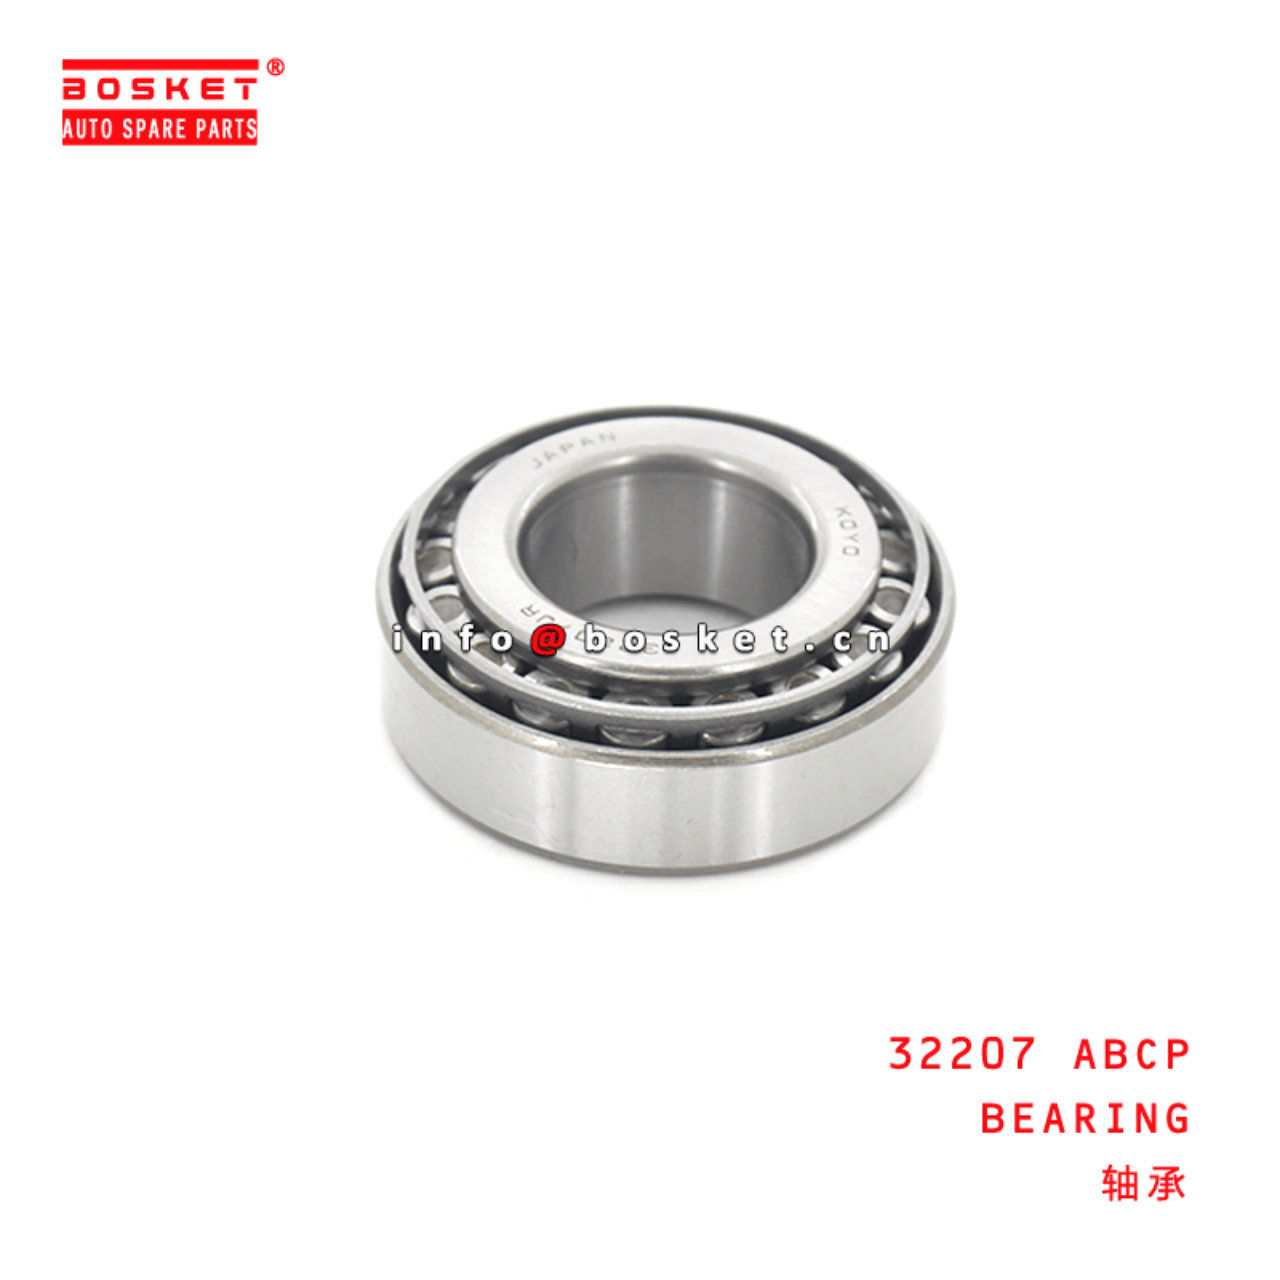 32207 Bearing Suitable for ISUZU